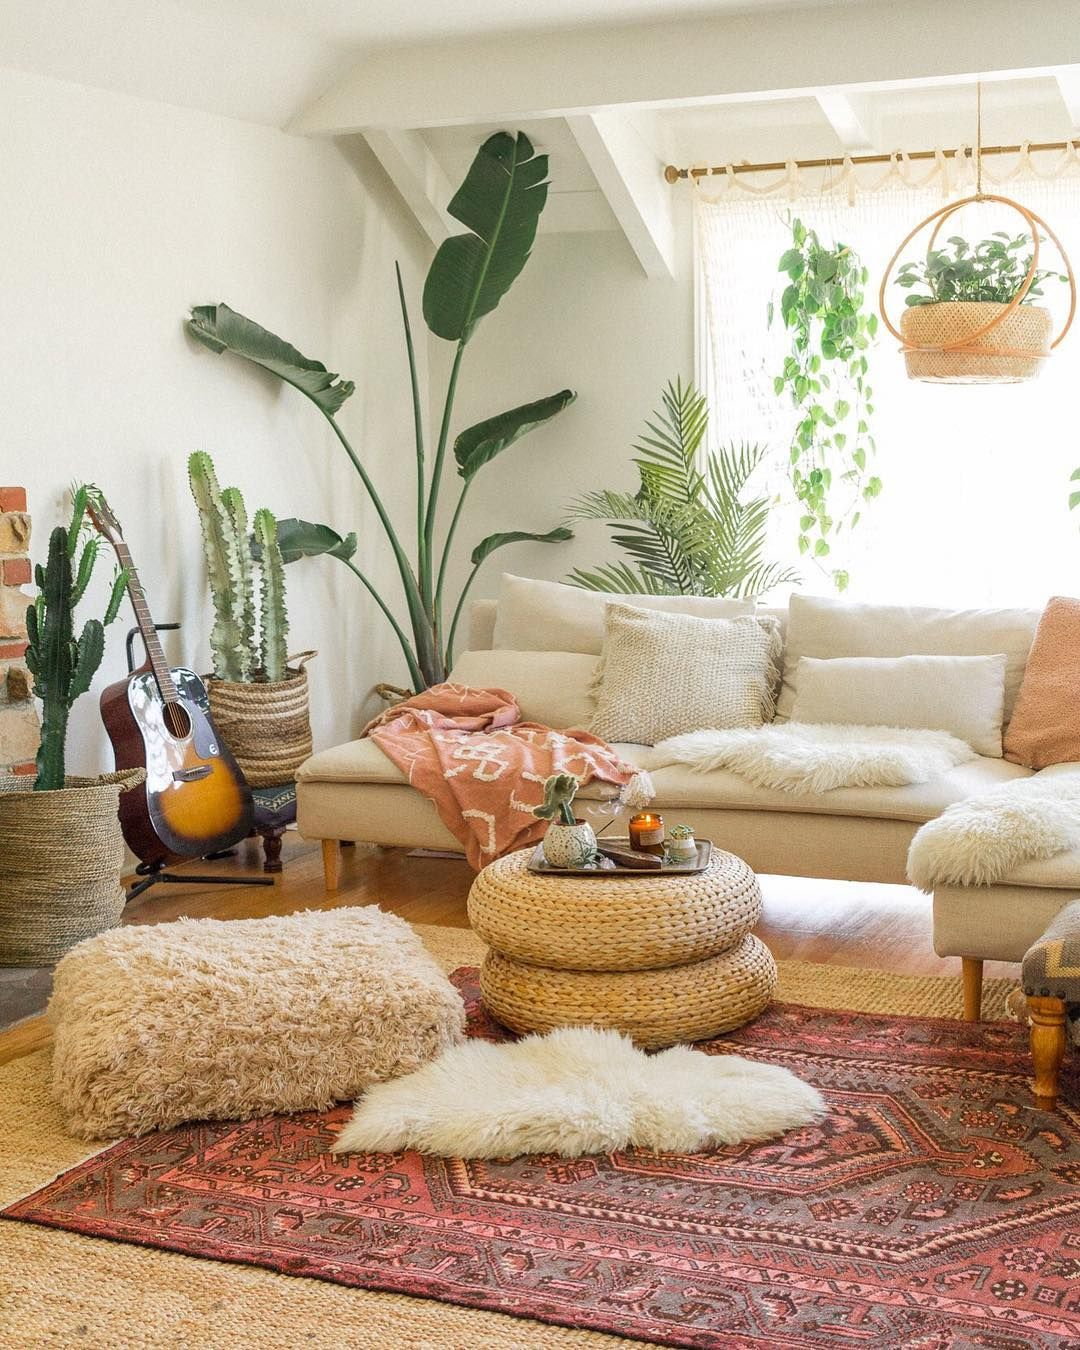 Boho Home Decor That Will Make Your Home Look Fantastic